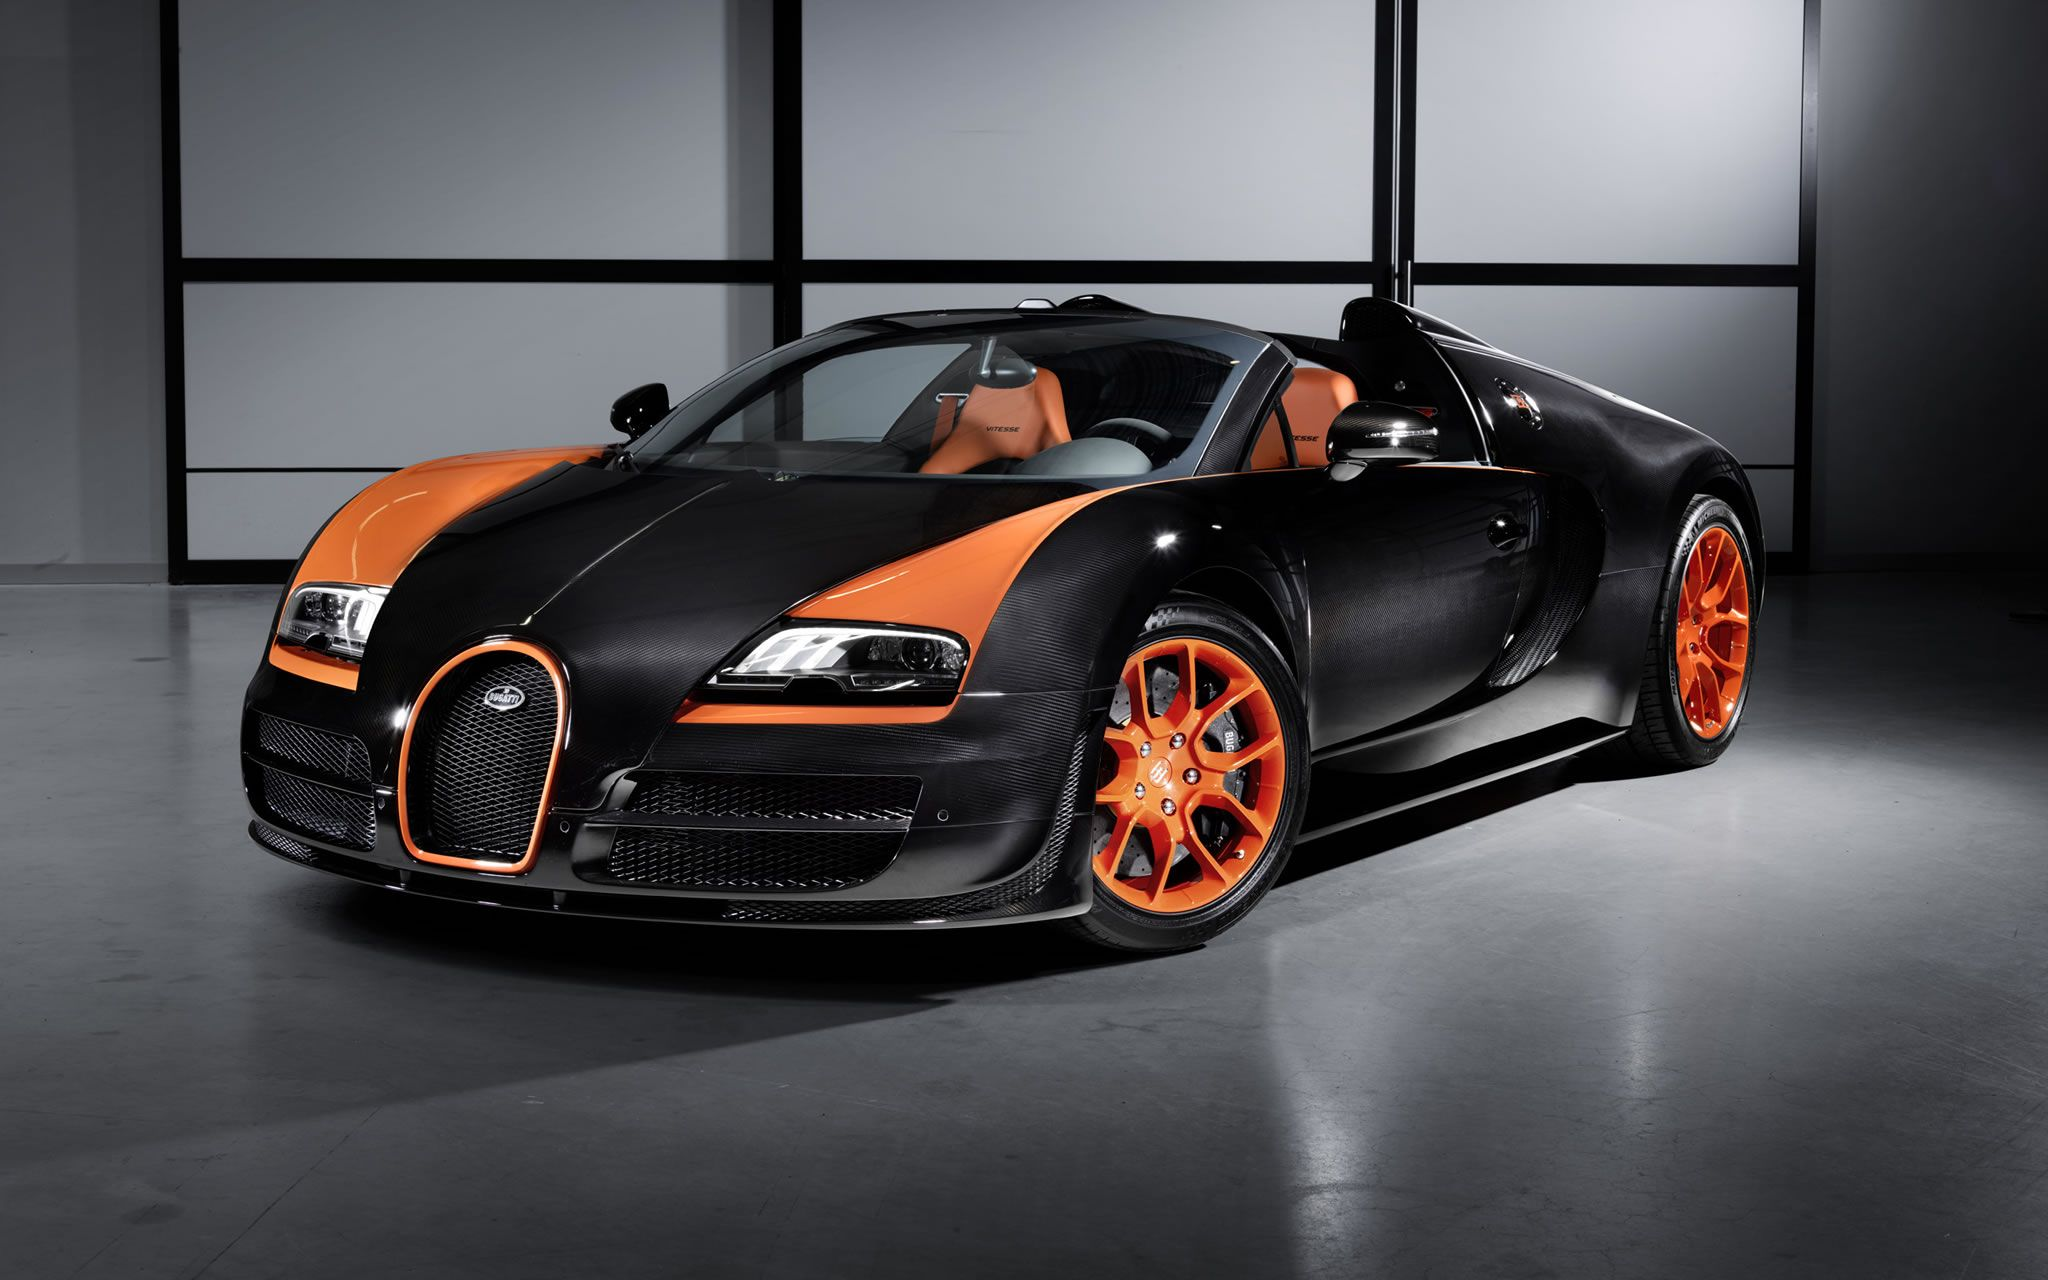 3c0133eb51e032a79cd13e1609291e47 Gorgeous Bugatti Veyron Grand Sport Vitesse Drag Race Cars Trend